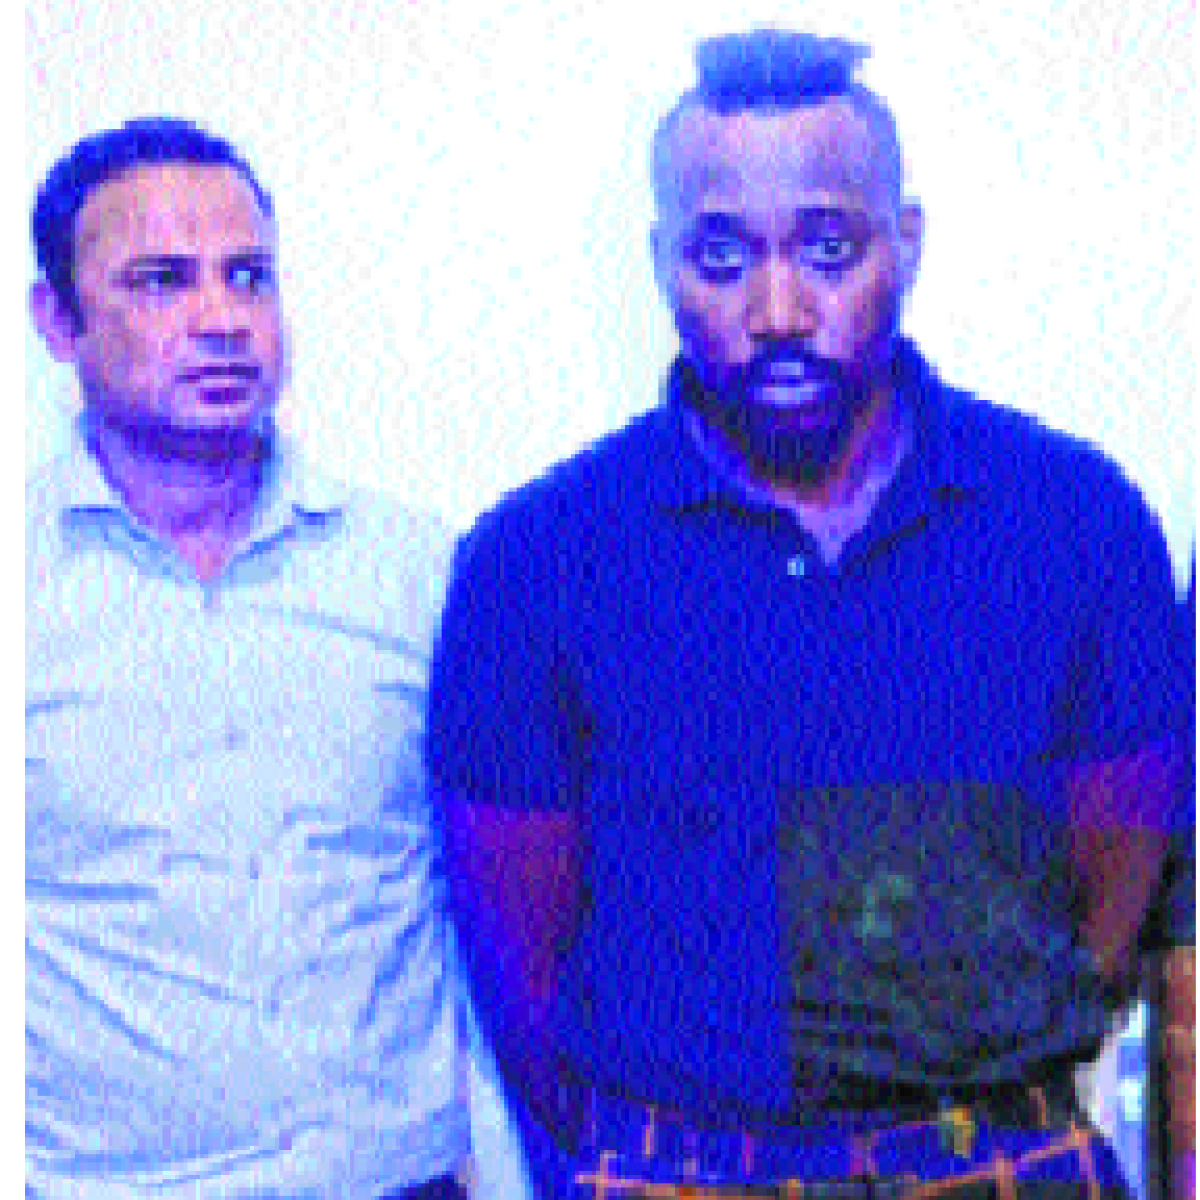 Uganda man clones ATM card, dupes man of Rs 16 L